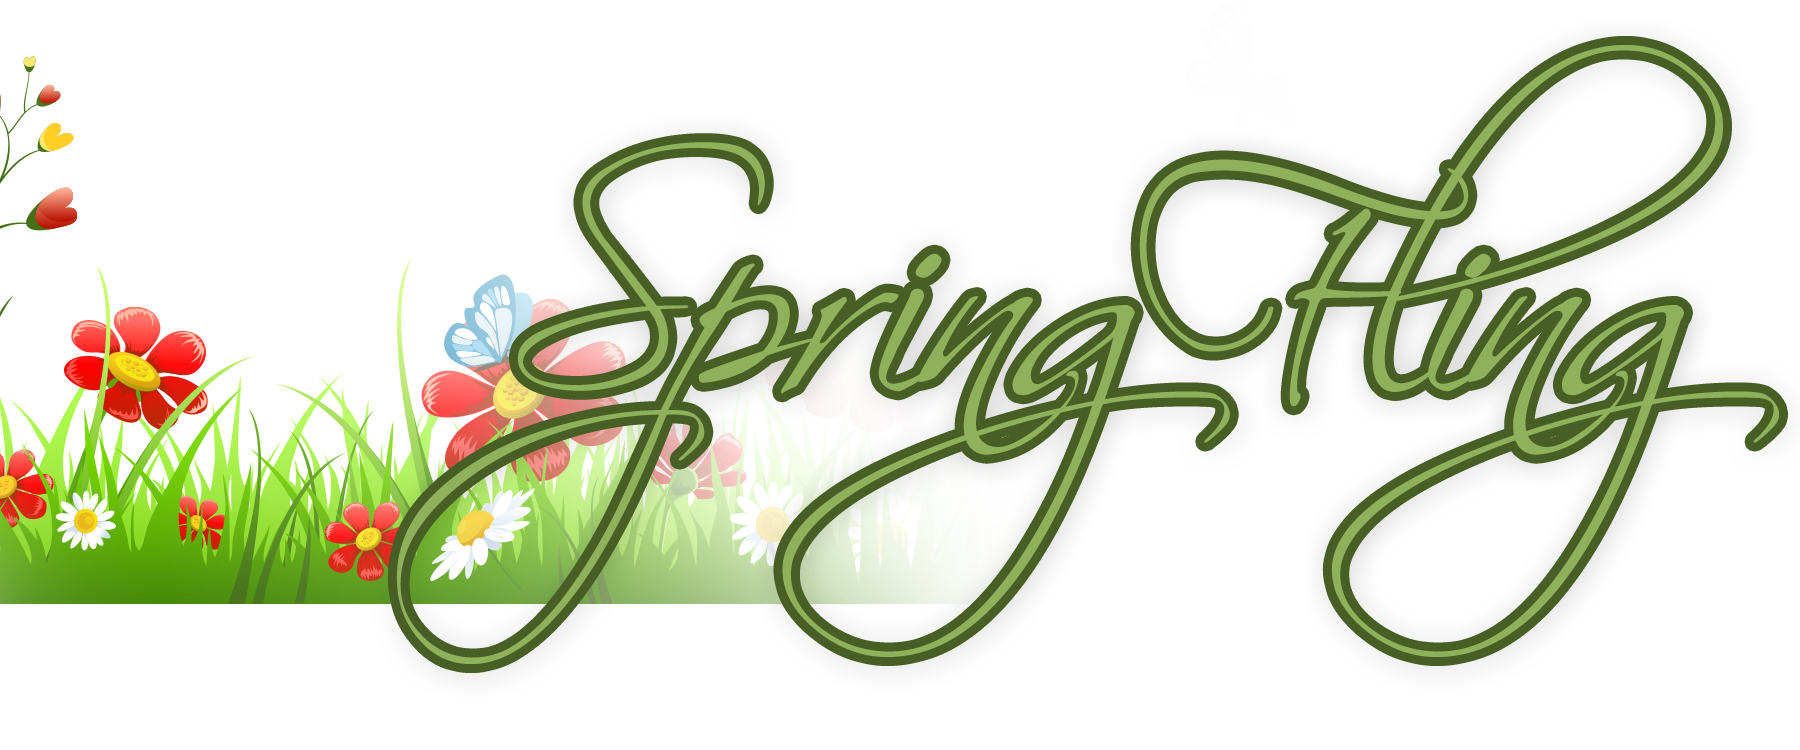 Spring fling png. Open house tussey mountain